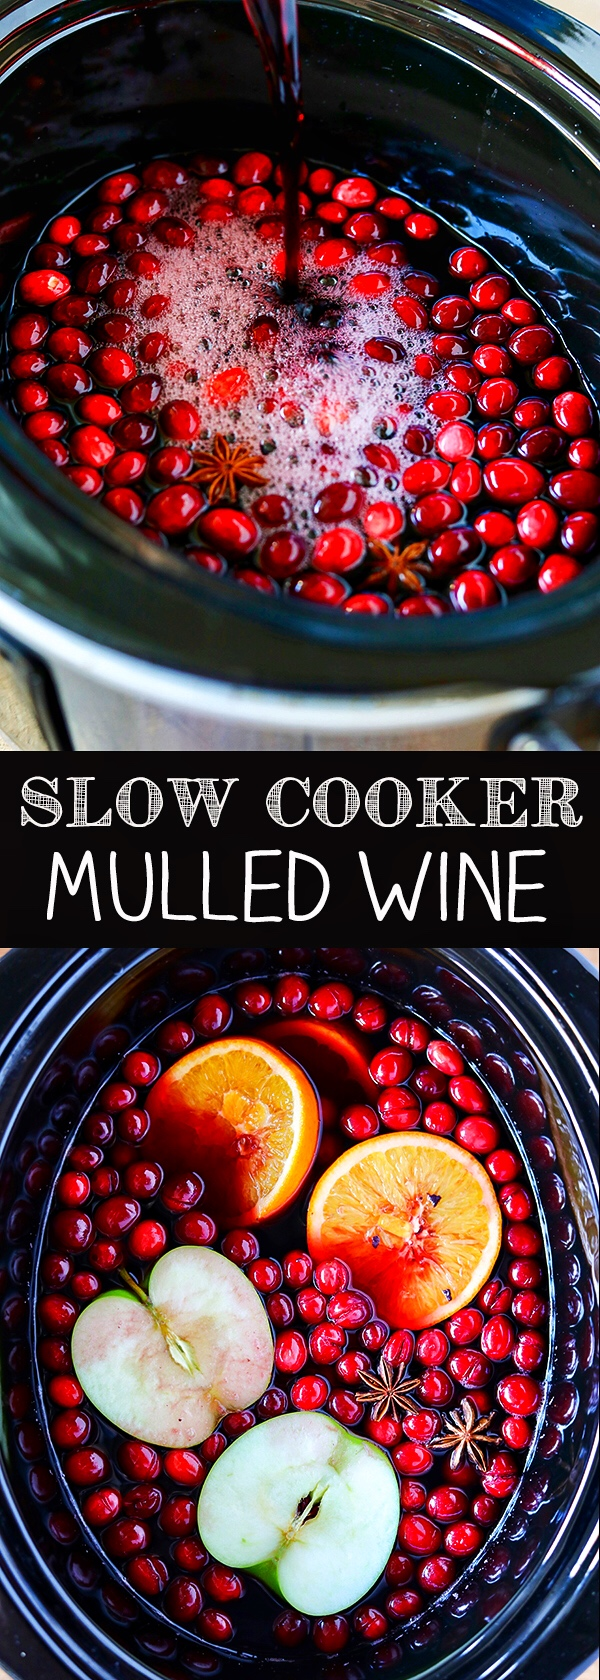 Slow Cooker Mulled Wine is packed with fruity flavors and warm spices, and is perfect for the holidays.